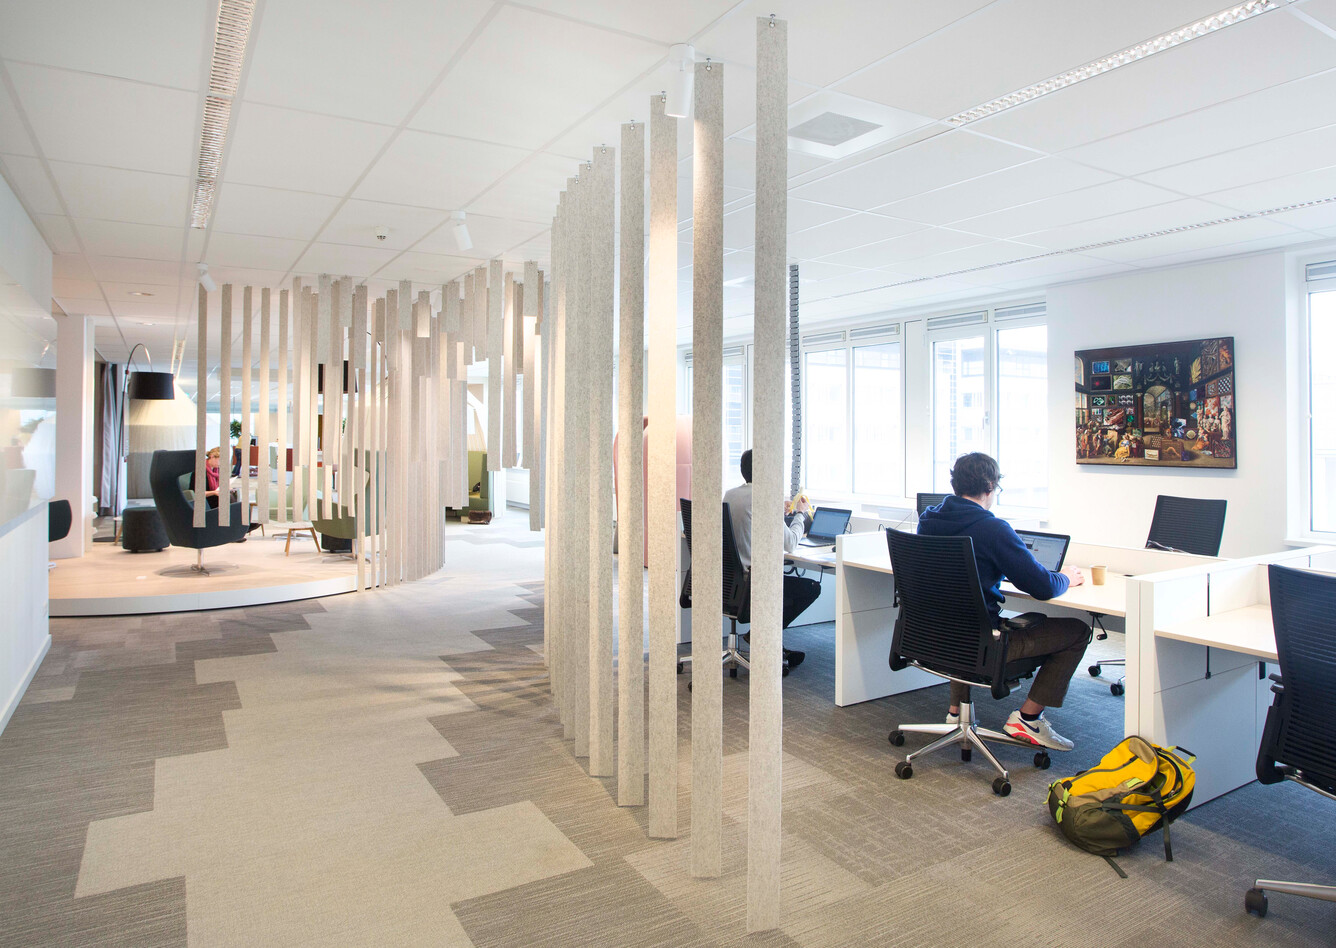 Royal Ahrend education project Maastricht University LB08